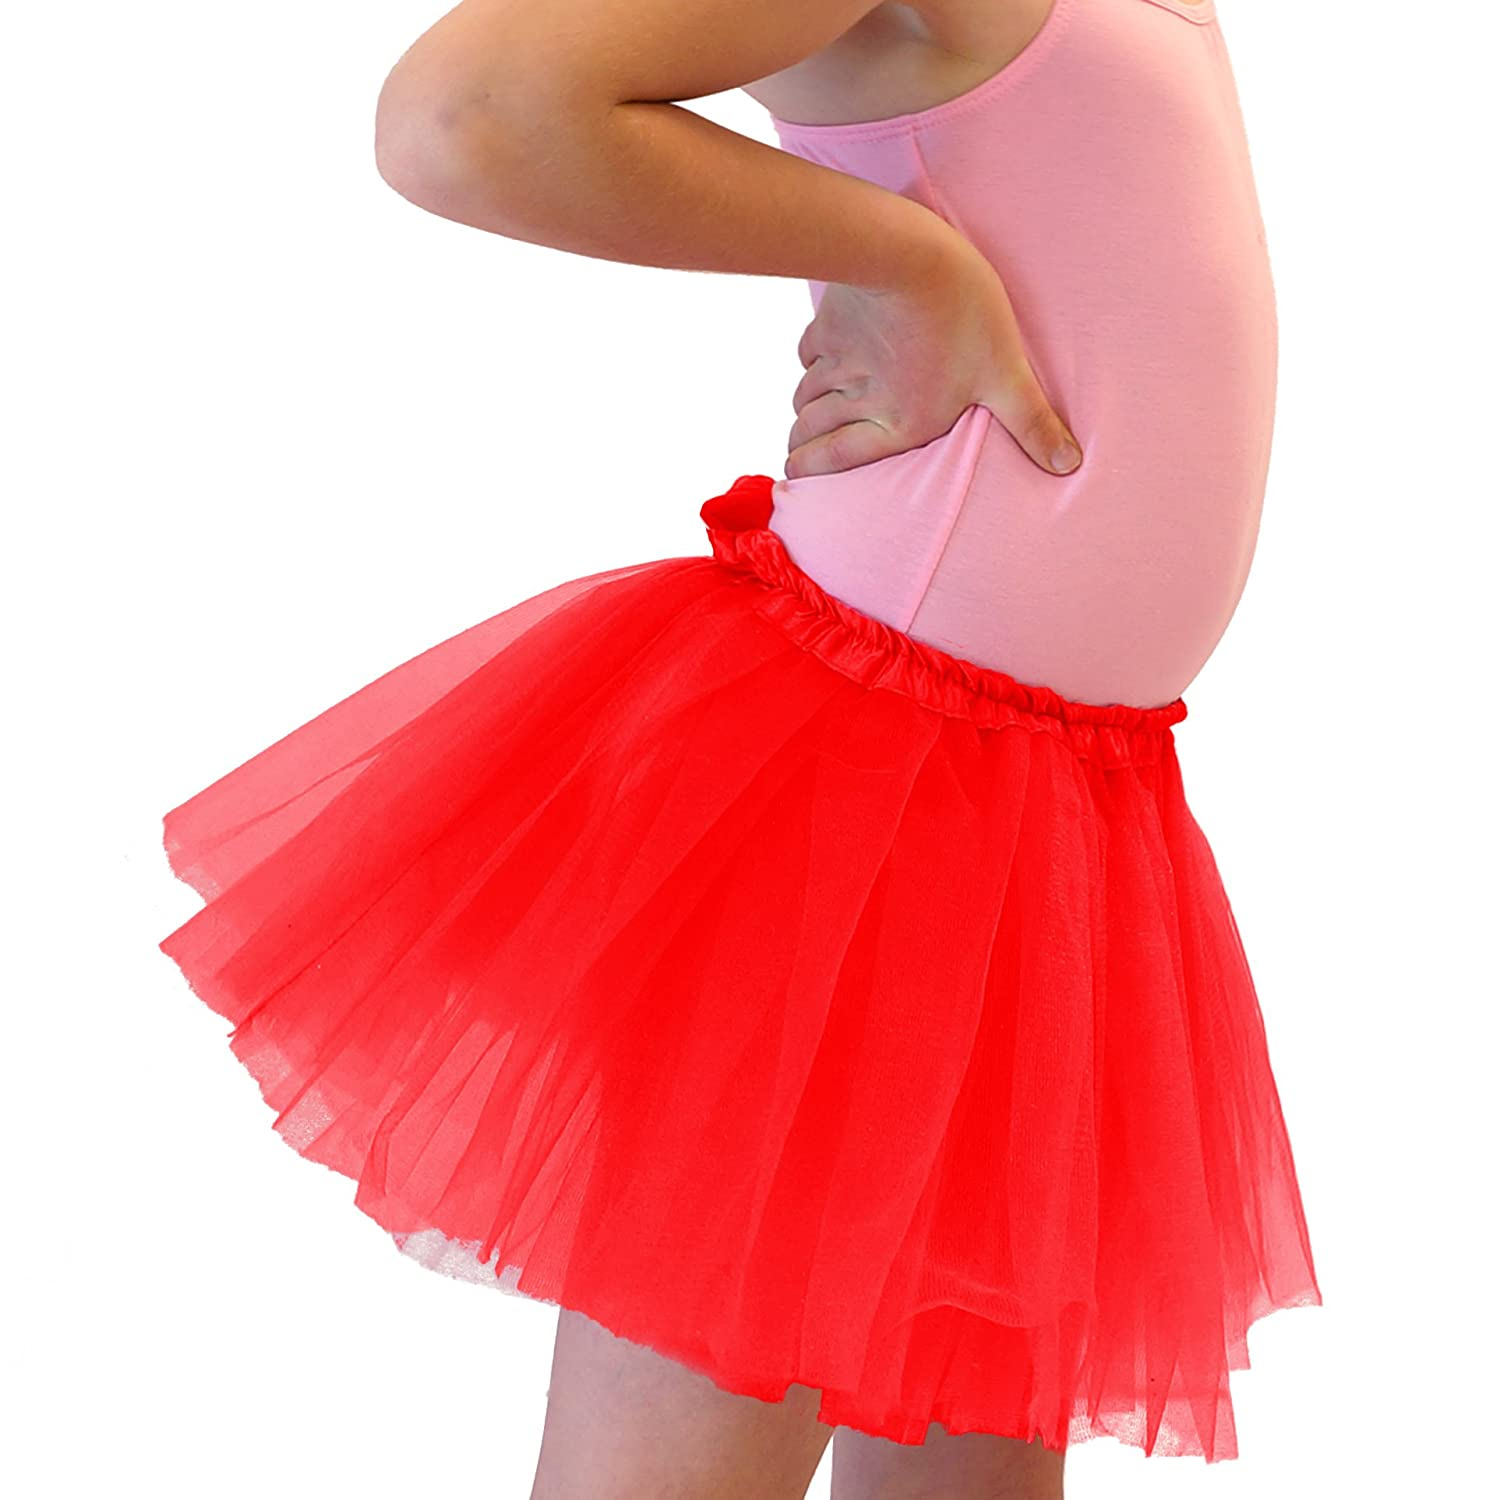 a0de9b92c4 Hairbows Unlimited Girls Dance Tutu Skirt for Dress Up & Fairy Costumes  16767